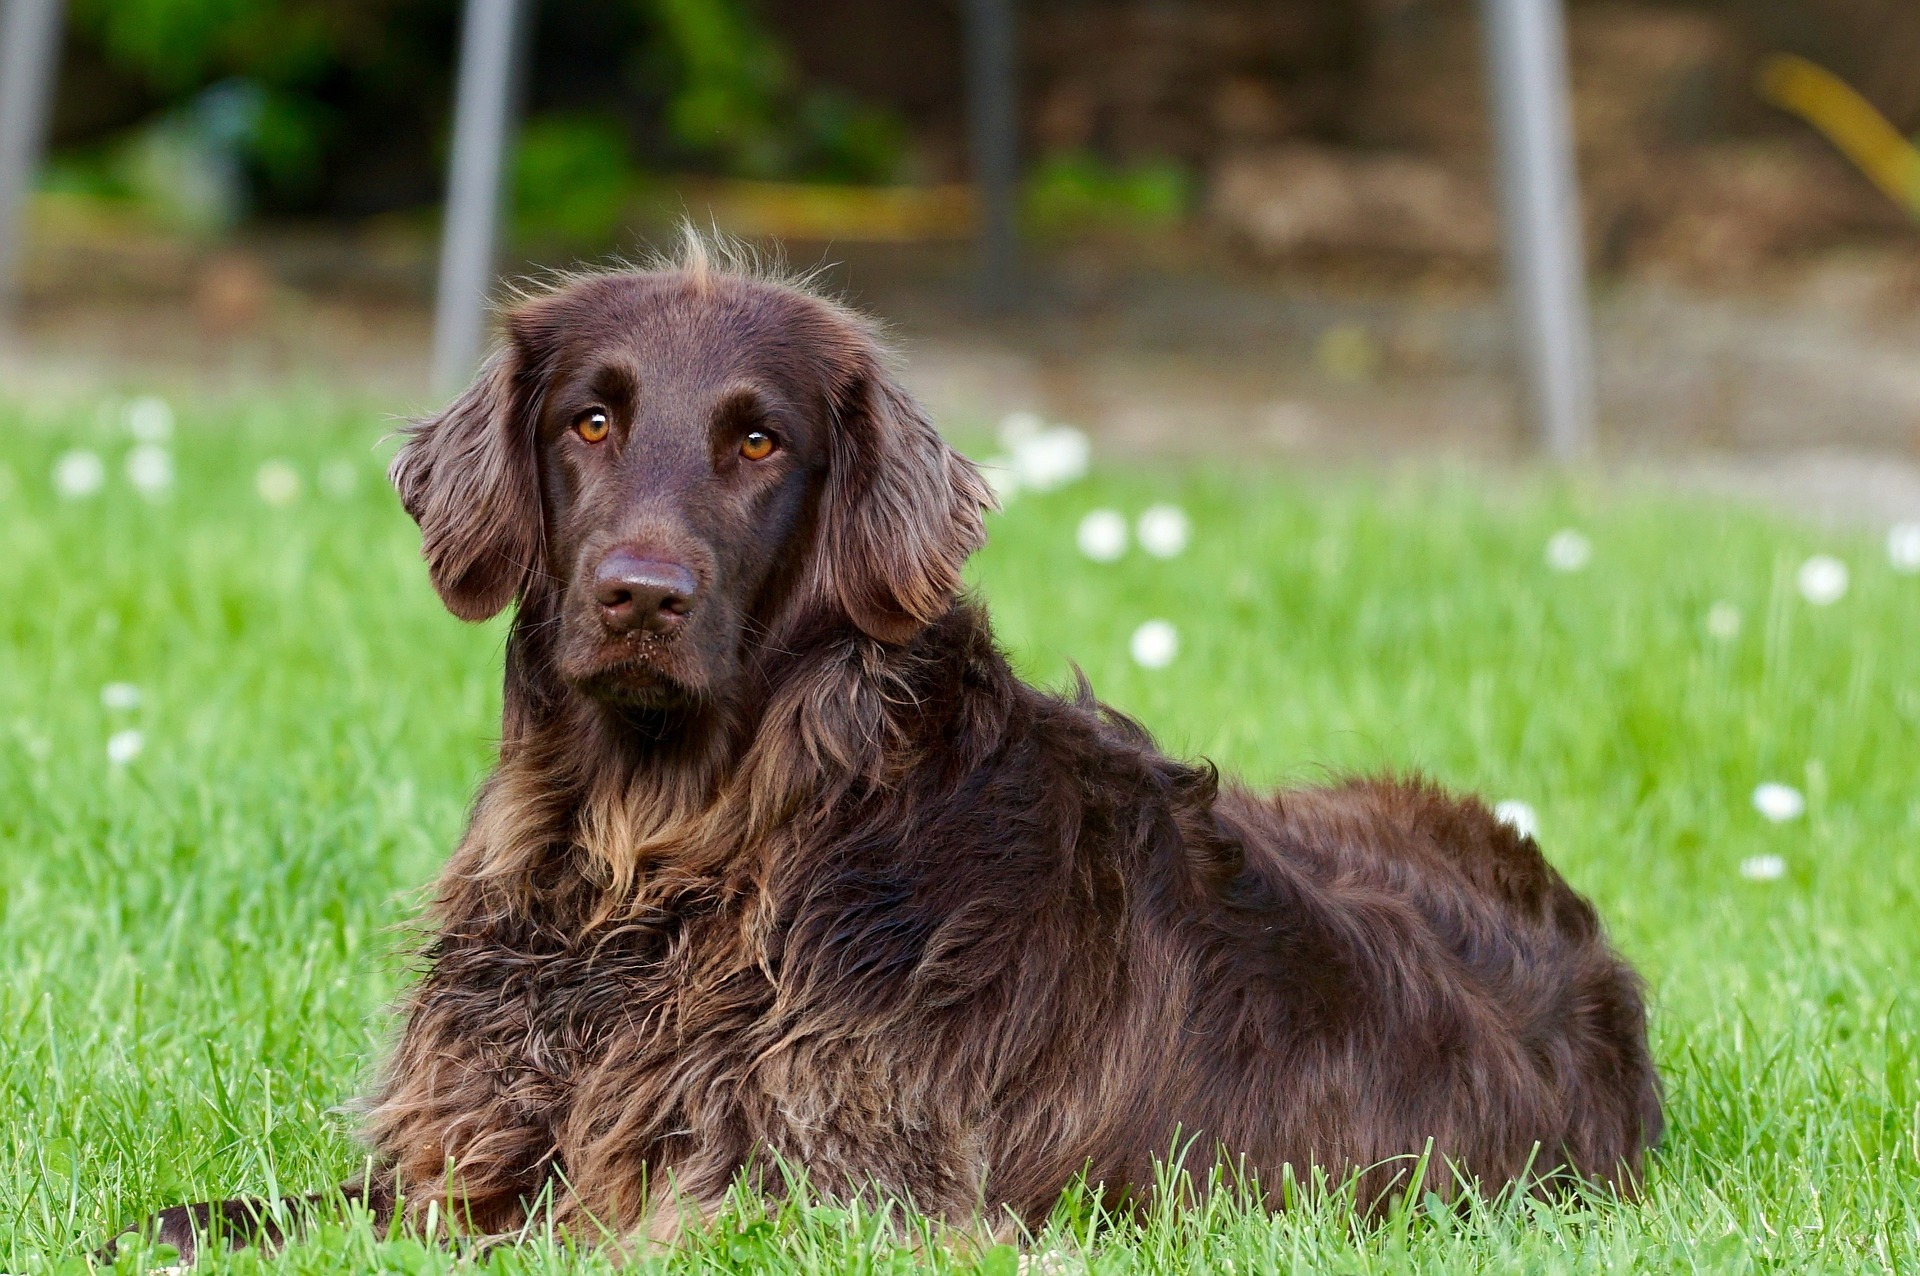 Are ticks dangerous to dogs